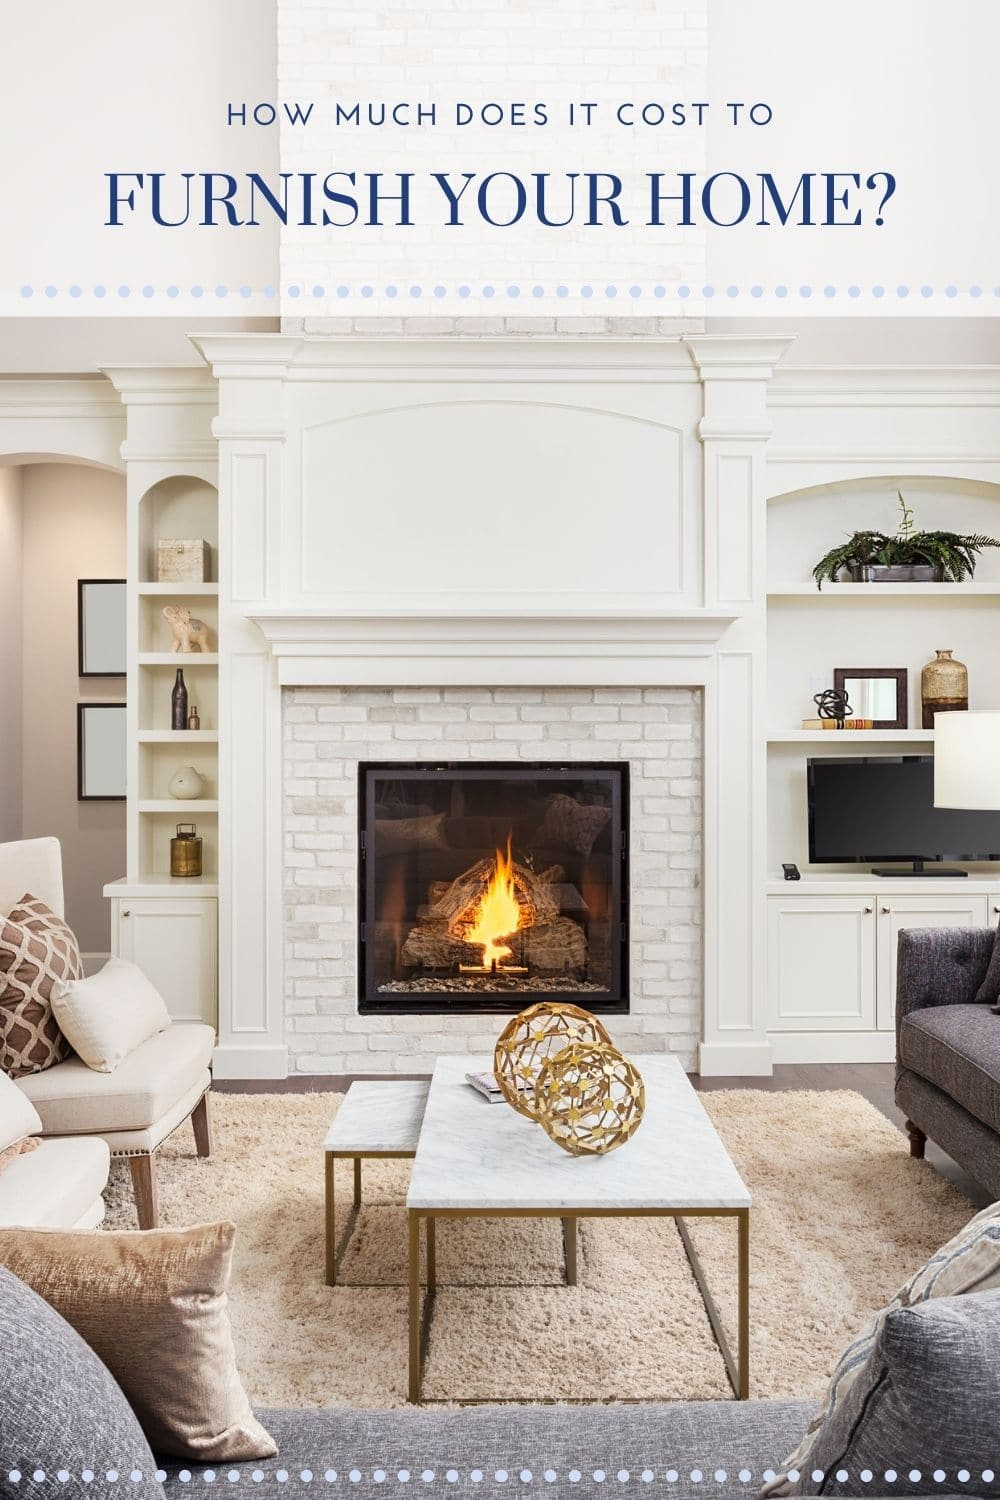 Find the ultimate list of home decor tips here with hundreds of how to articles on home decor, decorating rules, and DIY projects.